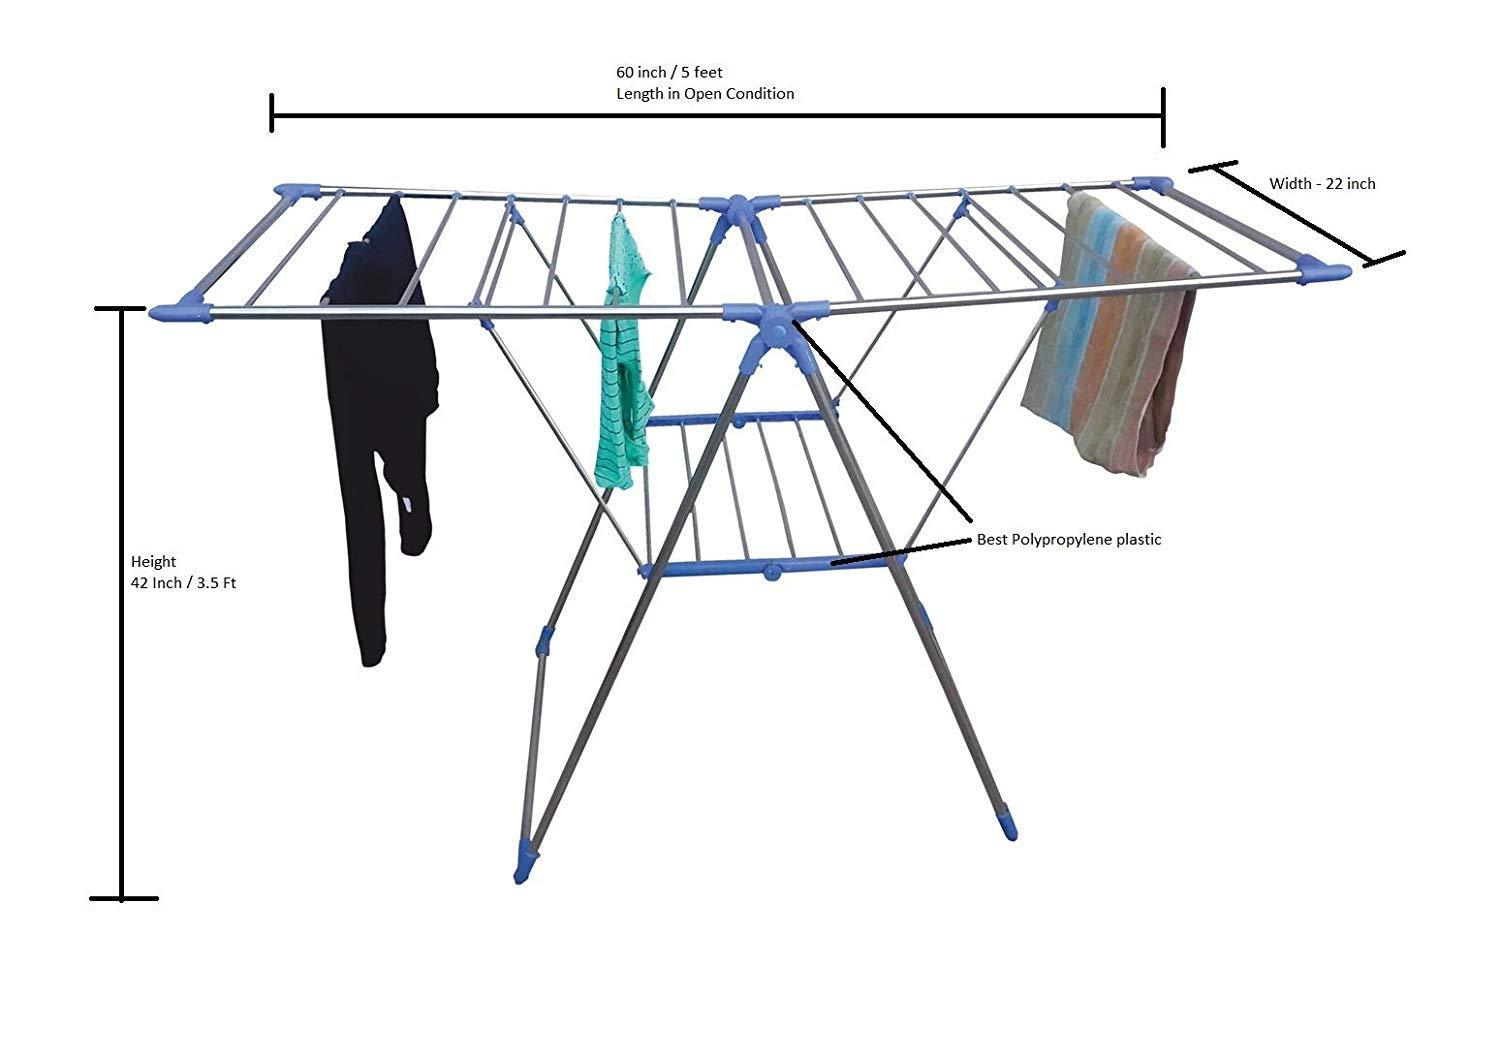 Adjustable Stainless Steel 2-Wings Foldable Butterfly Cloth Drying Stand/Rack - Unnati Enterprises